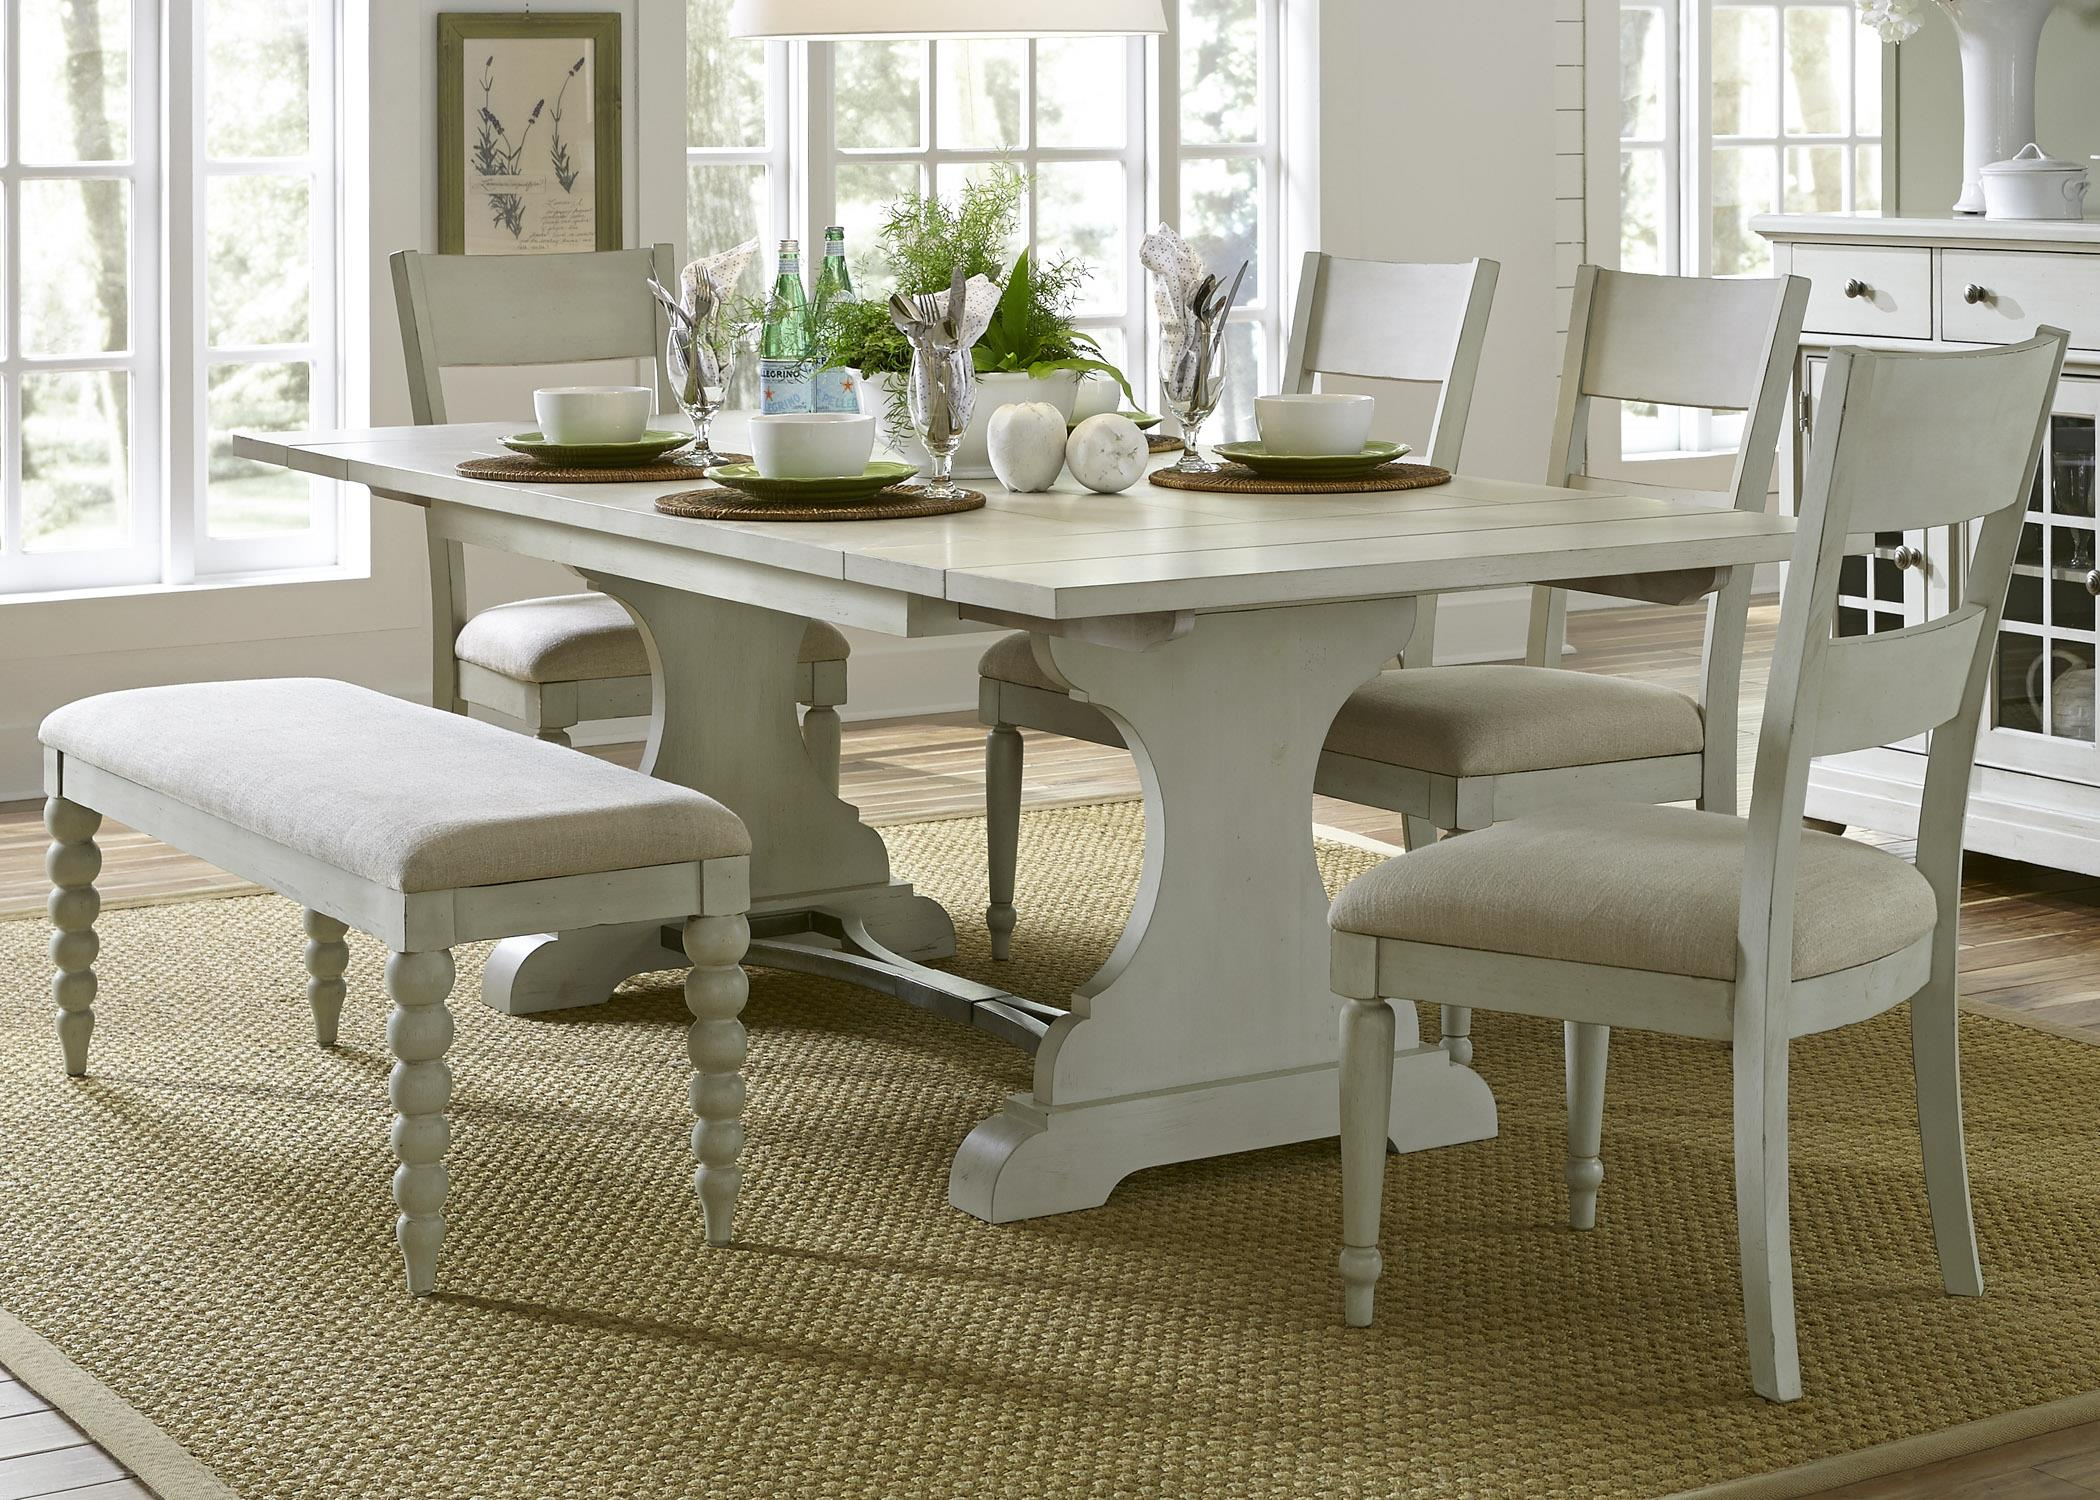 Liberty Furniture Harbor View Trestle Table and Chair Set - Item Number: 731-DR-6TRS